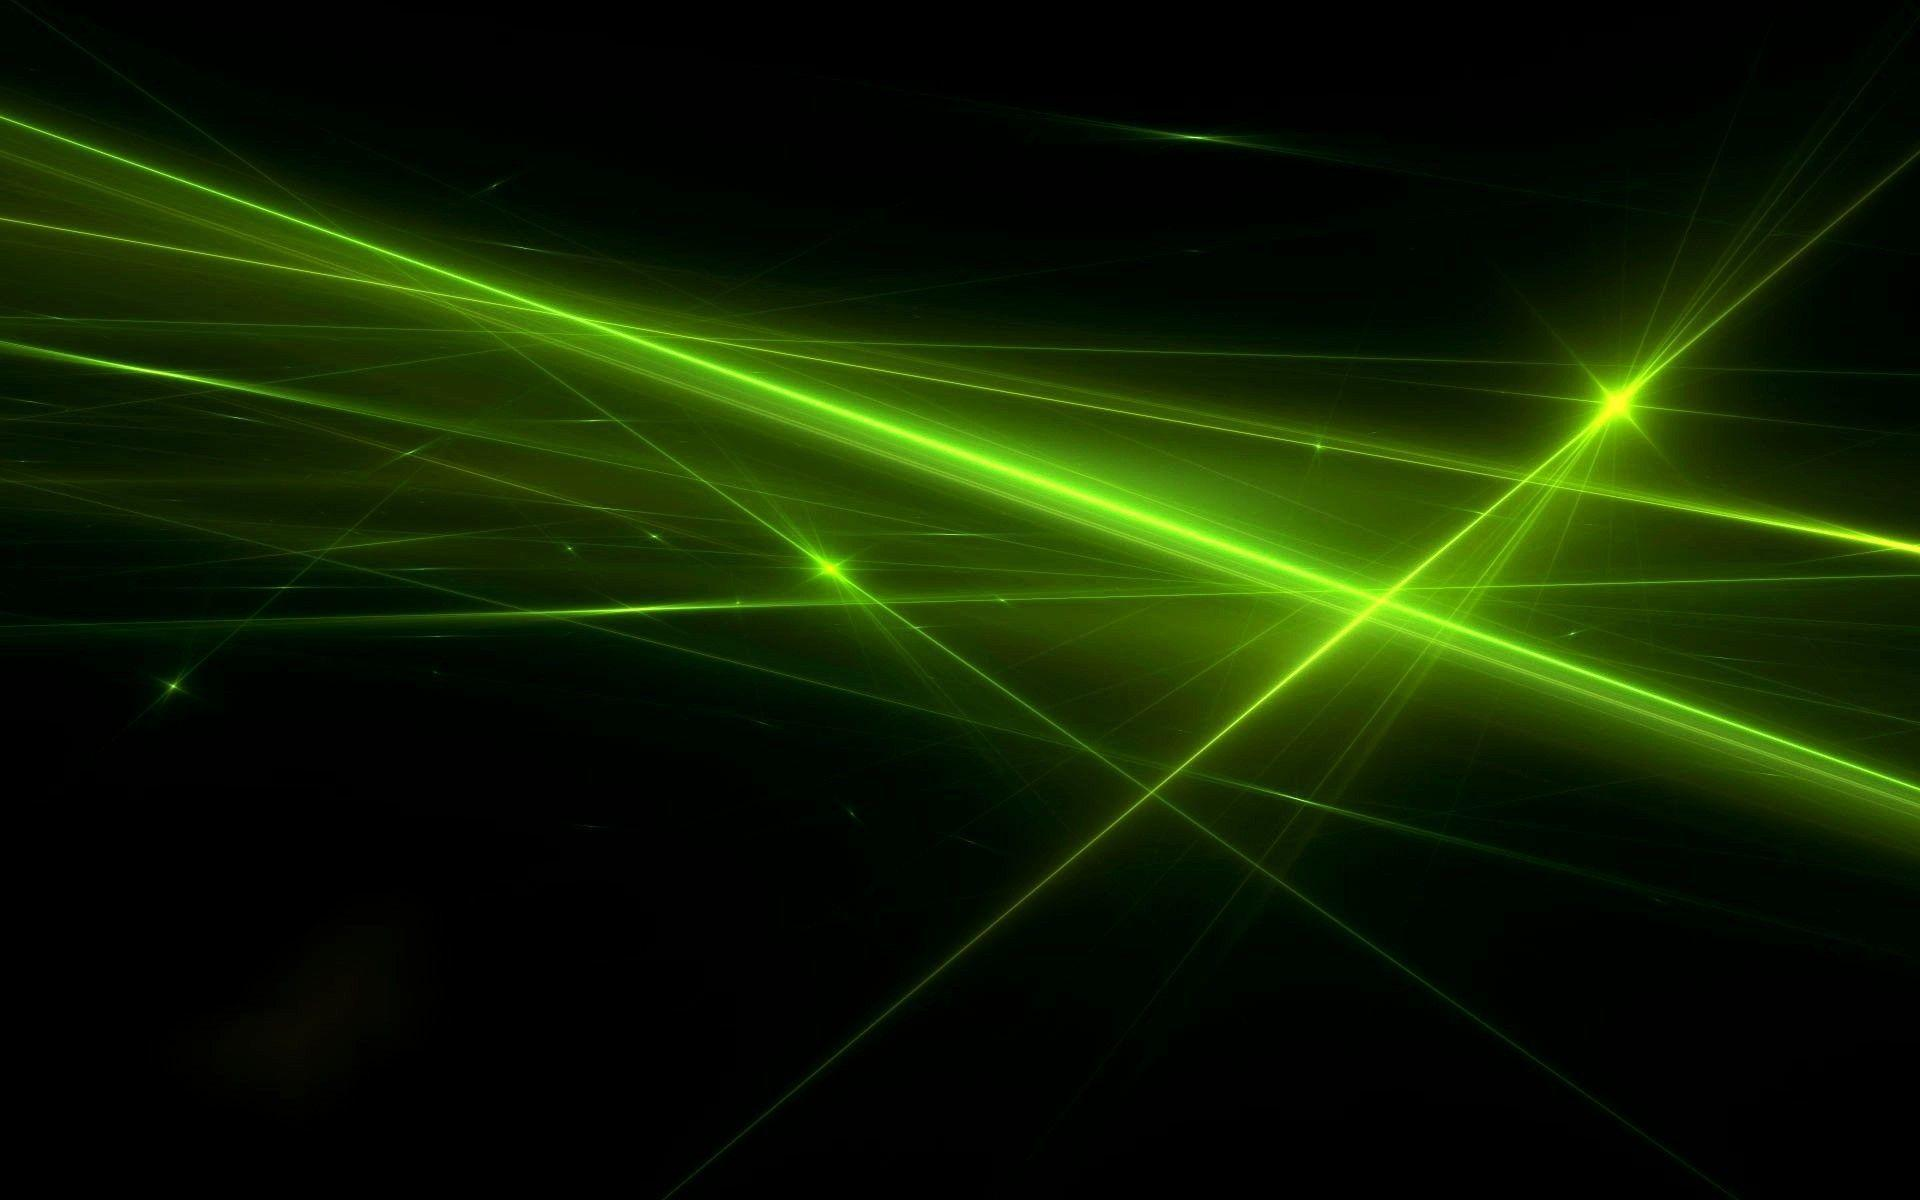 abstract green wallpaper photo